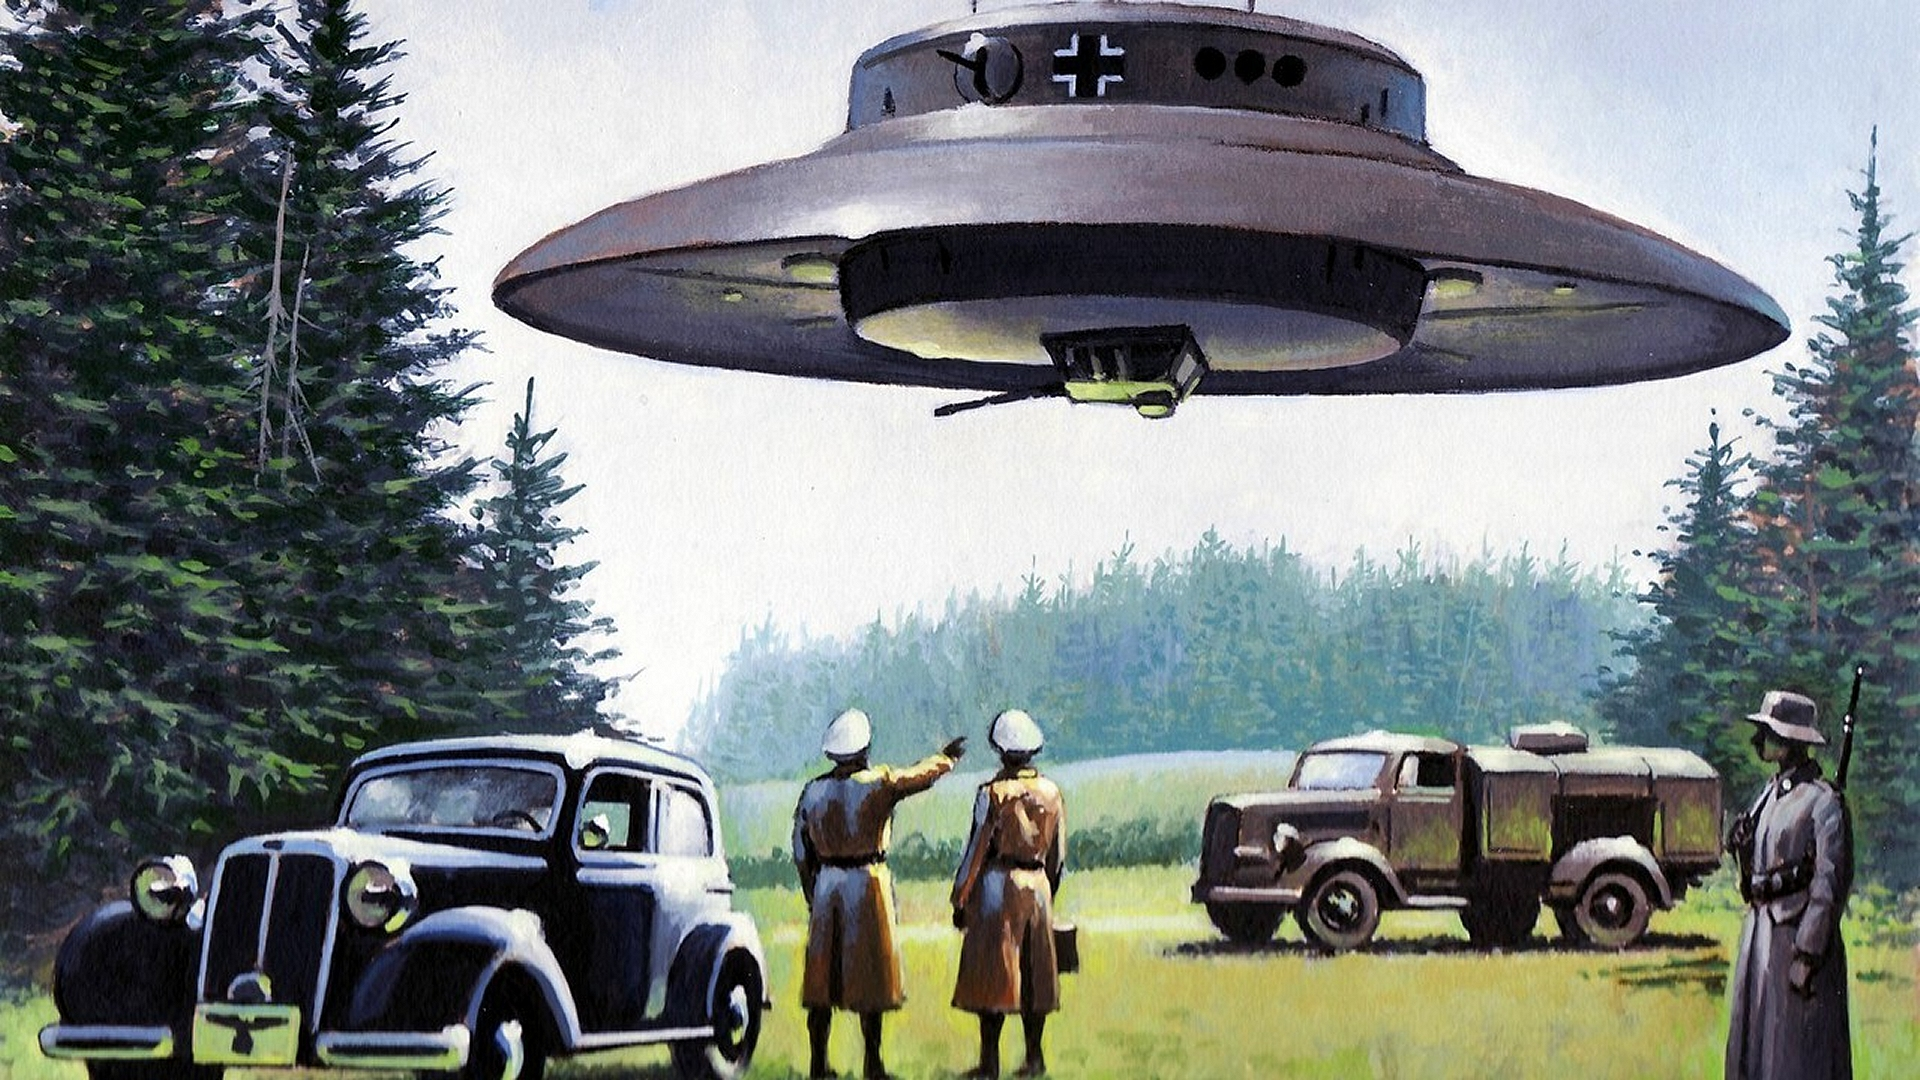 nazi UFO German flying saucer Wallpapers 1920x1080